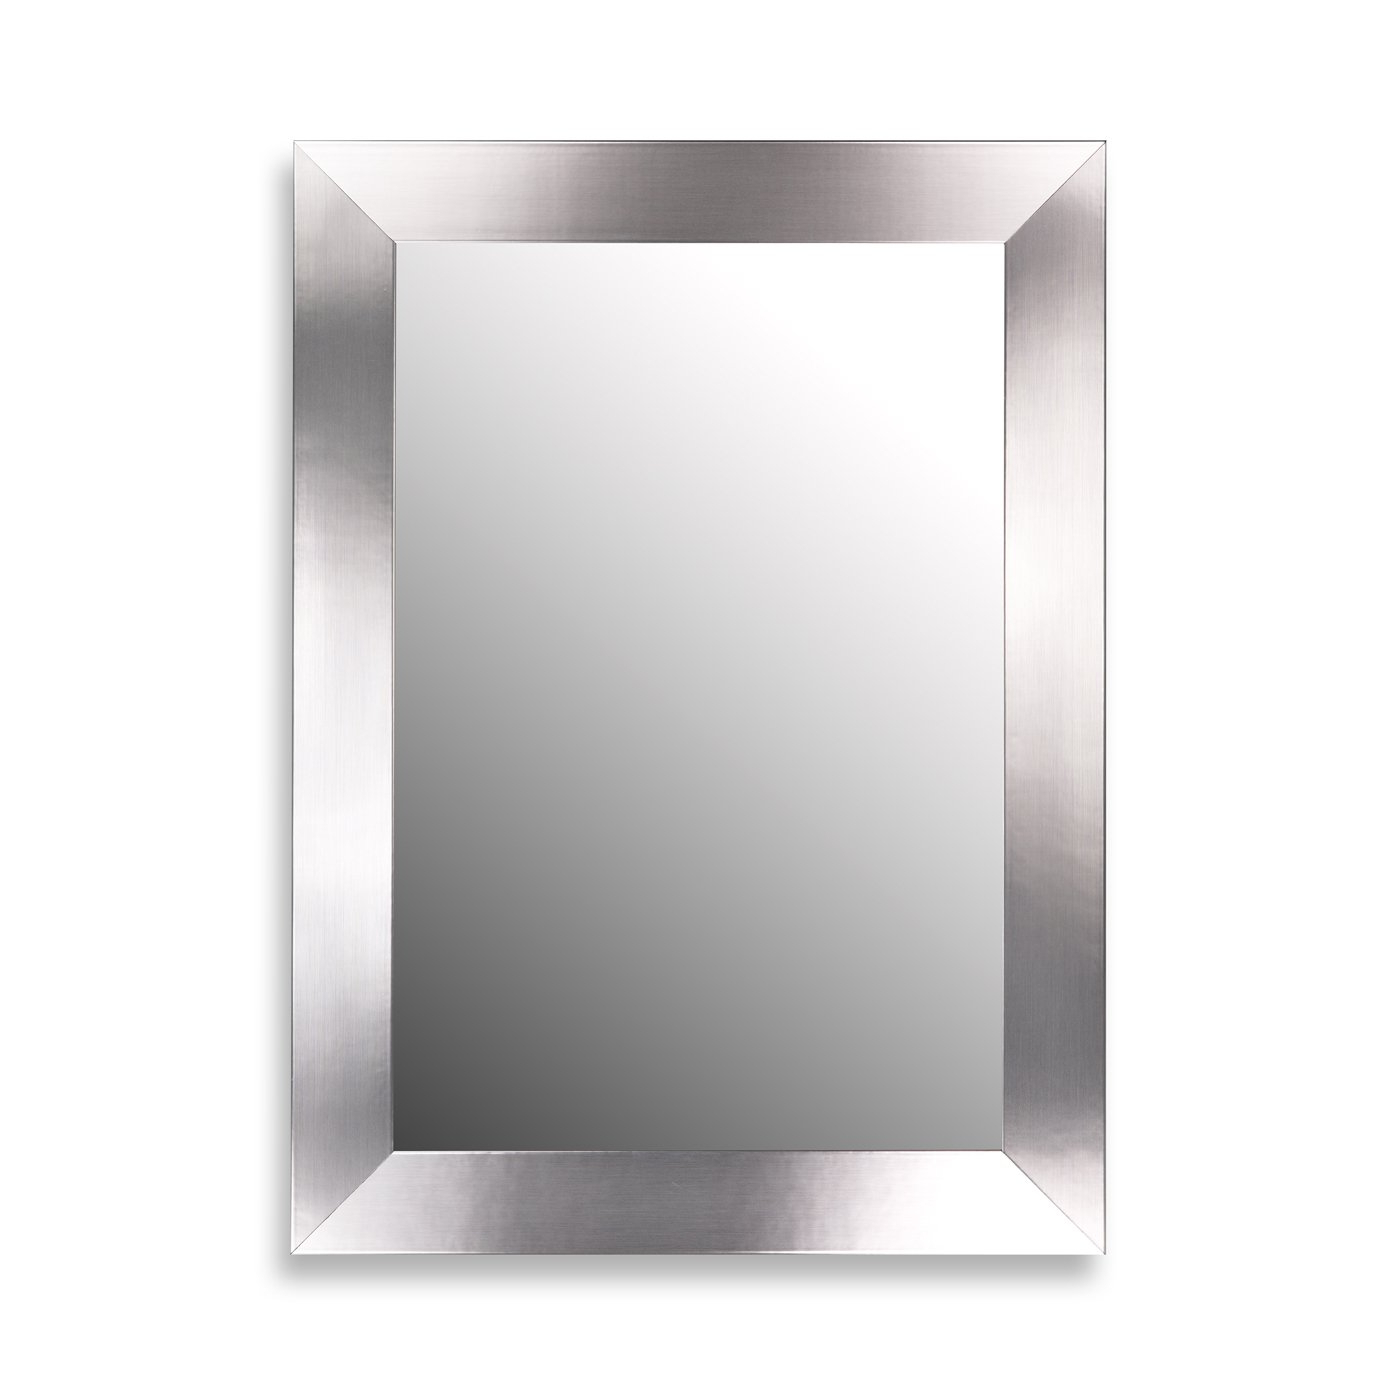 Flat Wall Mirrors With Well Known Hitchcock Butterfield 25390 Stainless Flat Wall Mirror (View 8 of 20)